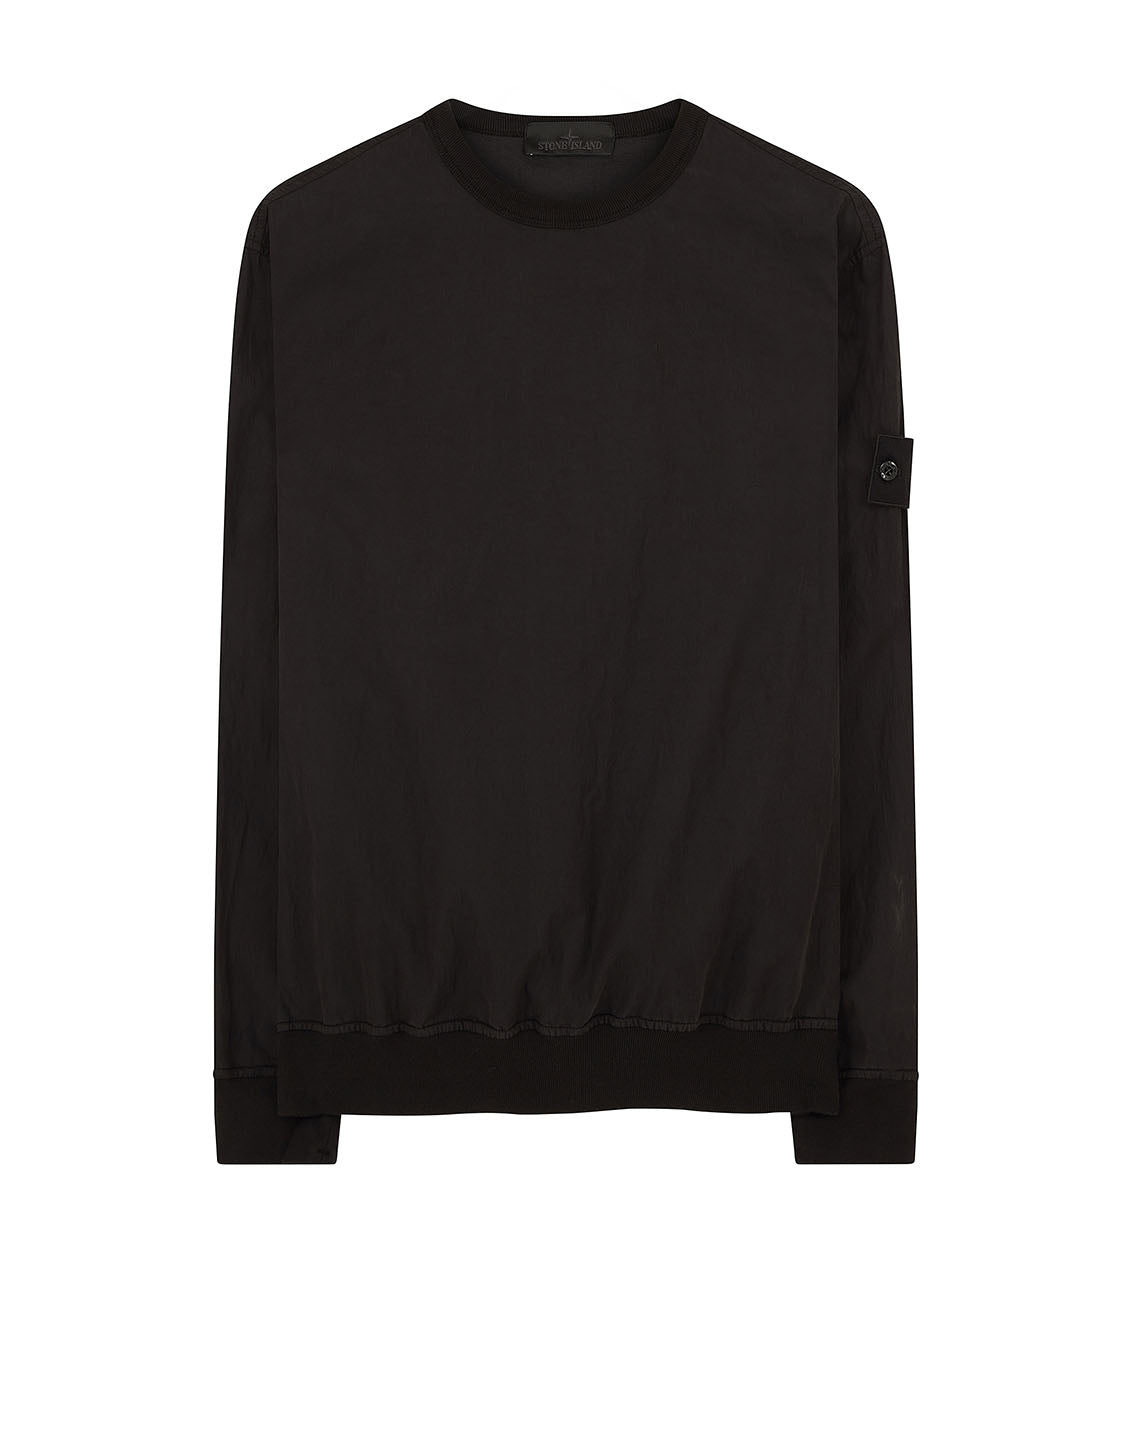 659F2 GHOST PIECE_COTTON NYLON TELA Sweatshirt in Black